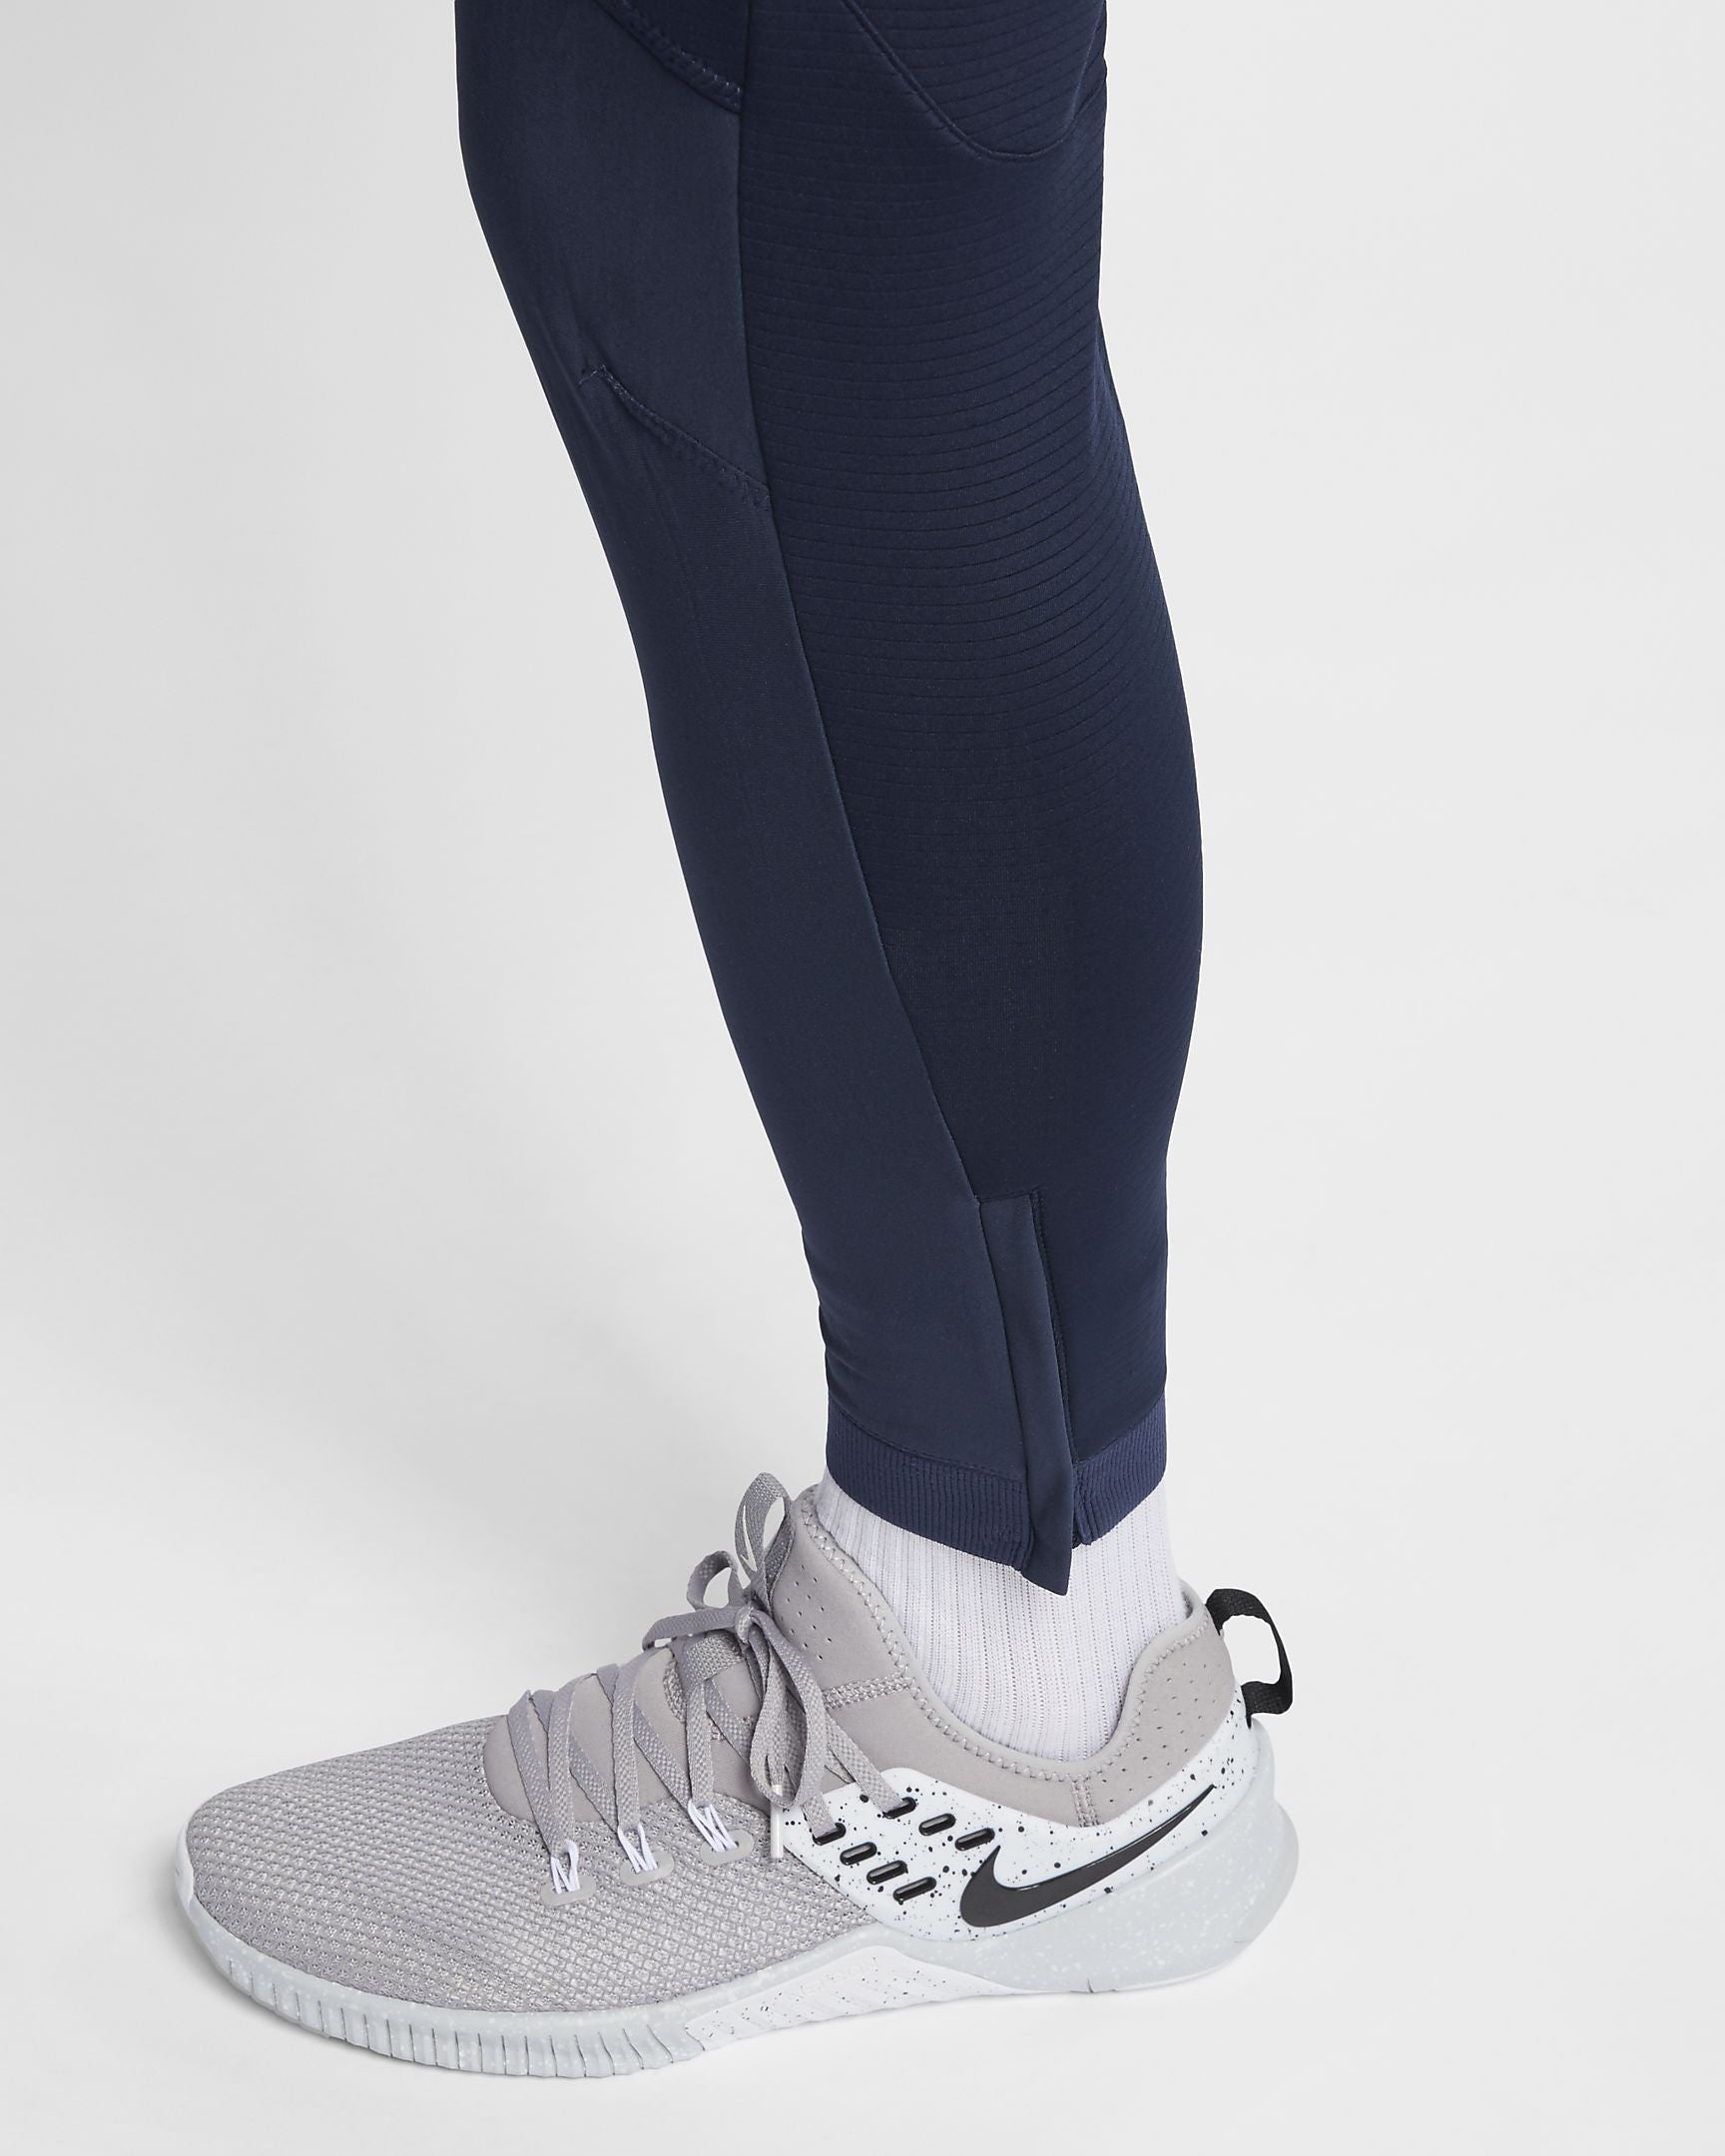 Nike Pro Fitness Pants (Tall Fit) - Navy